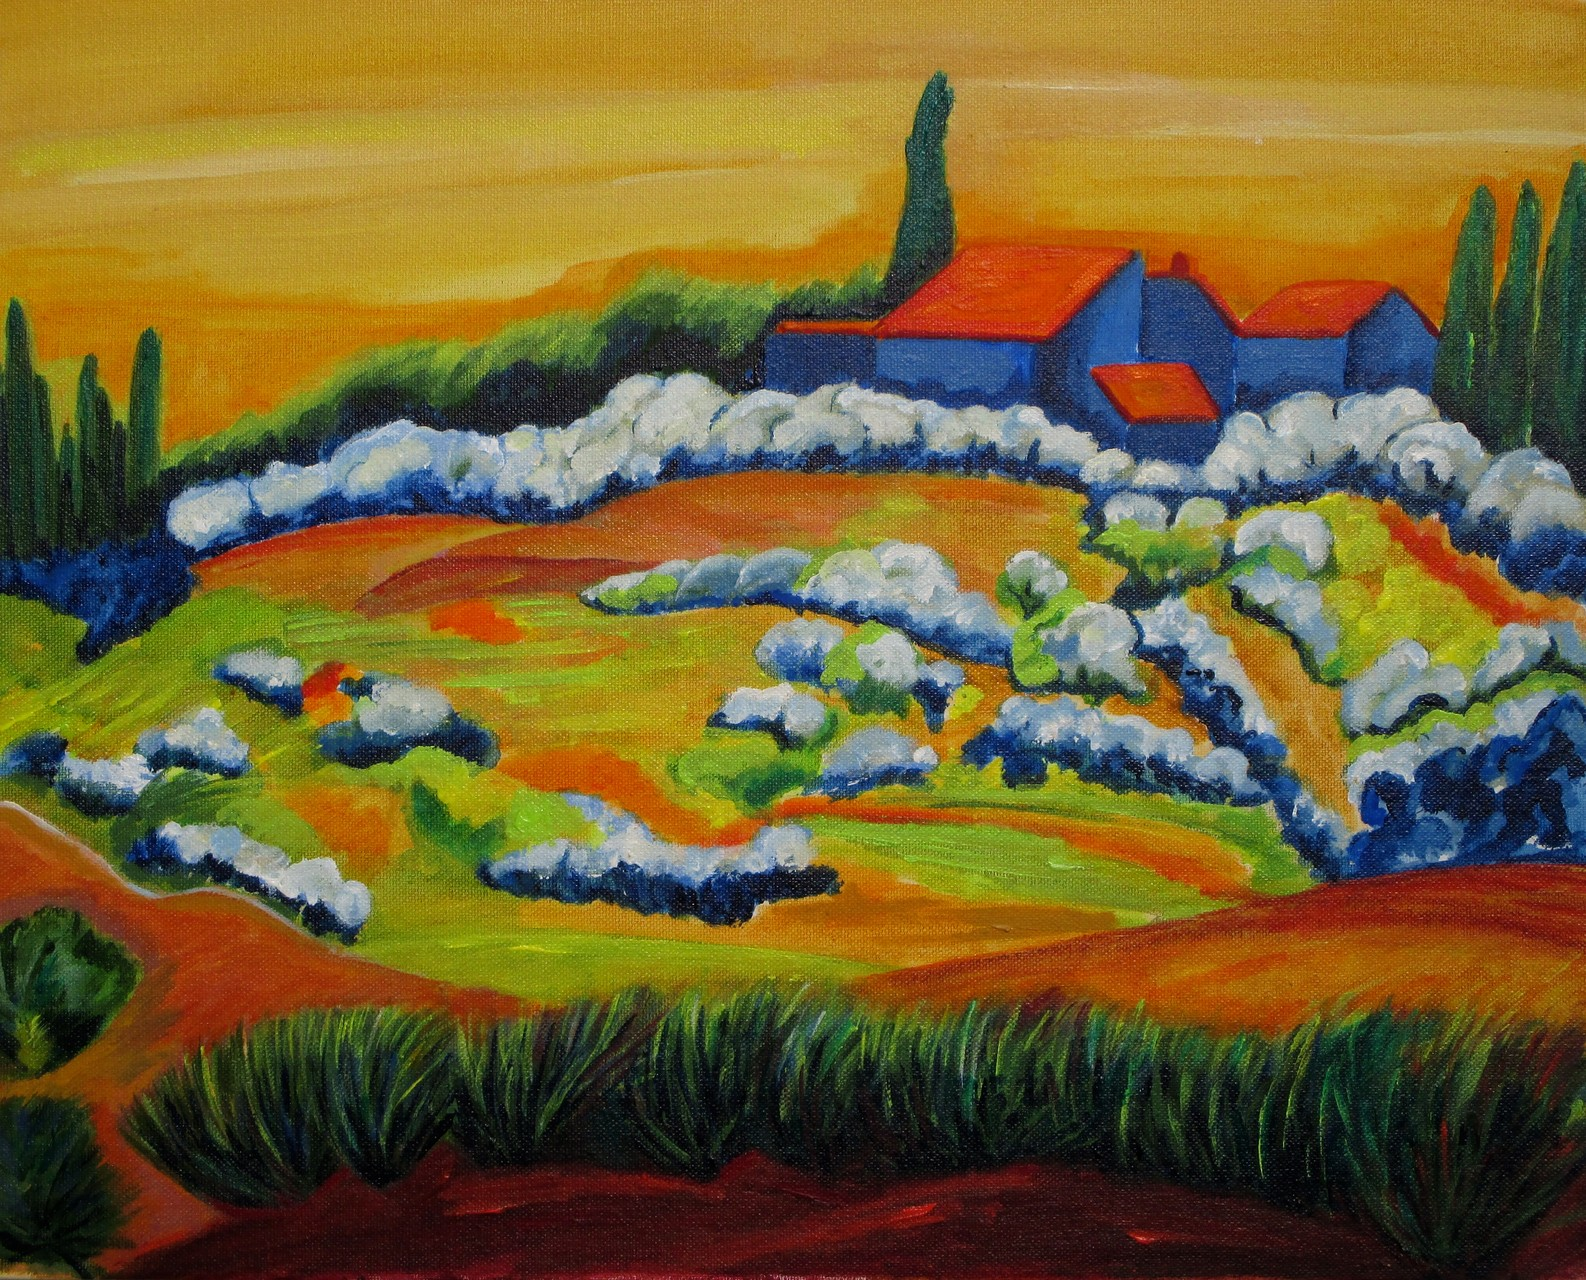 Tuscan Hills, acrylic on canvas, 20 x 16, SOLD